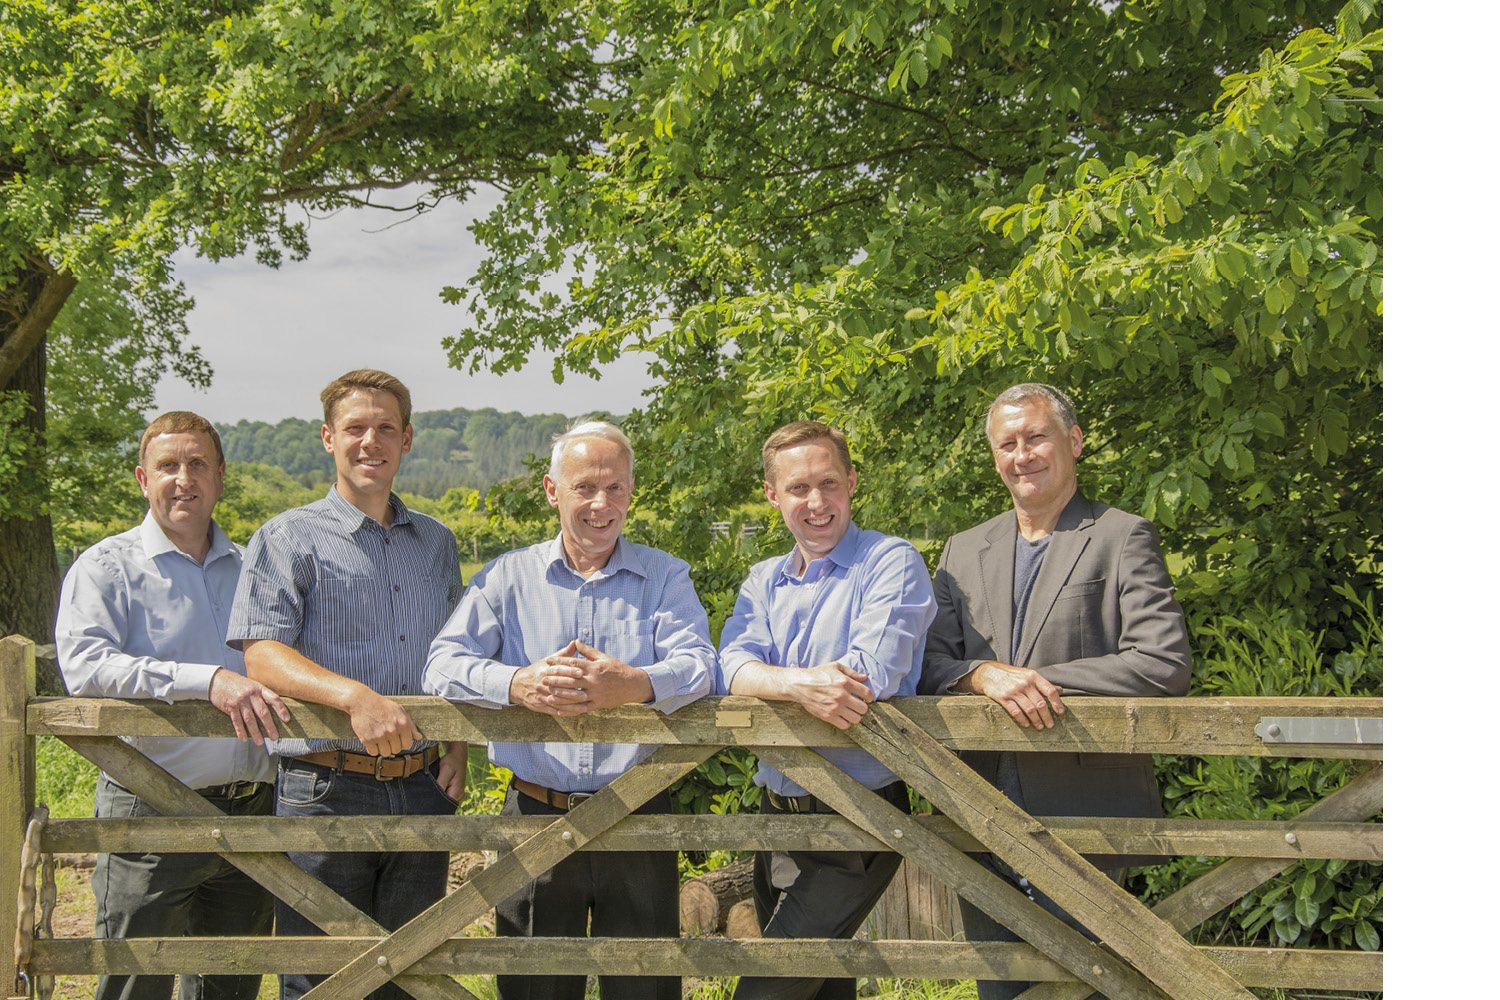 Our Team - Left to Right: Chris Page, Harry Gauntlett, John Gauntlett, Dean Gauntlett, Mark Jordan